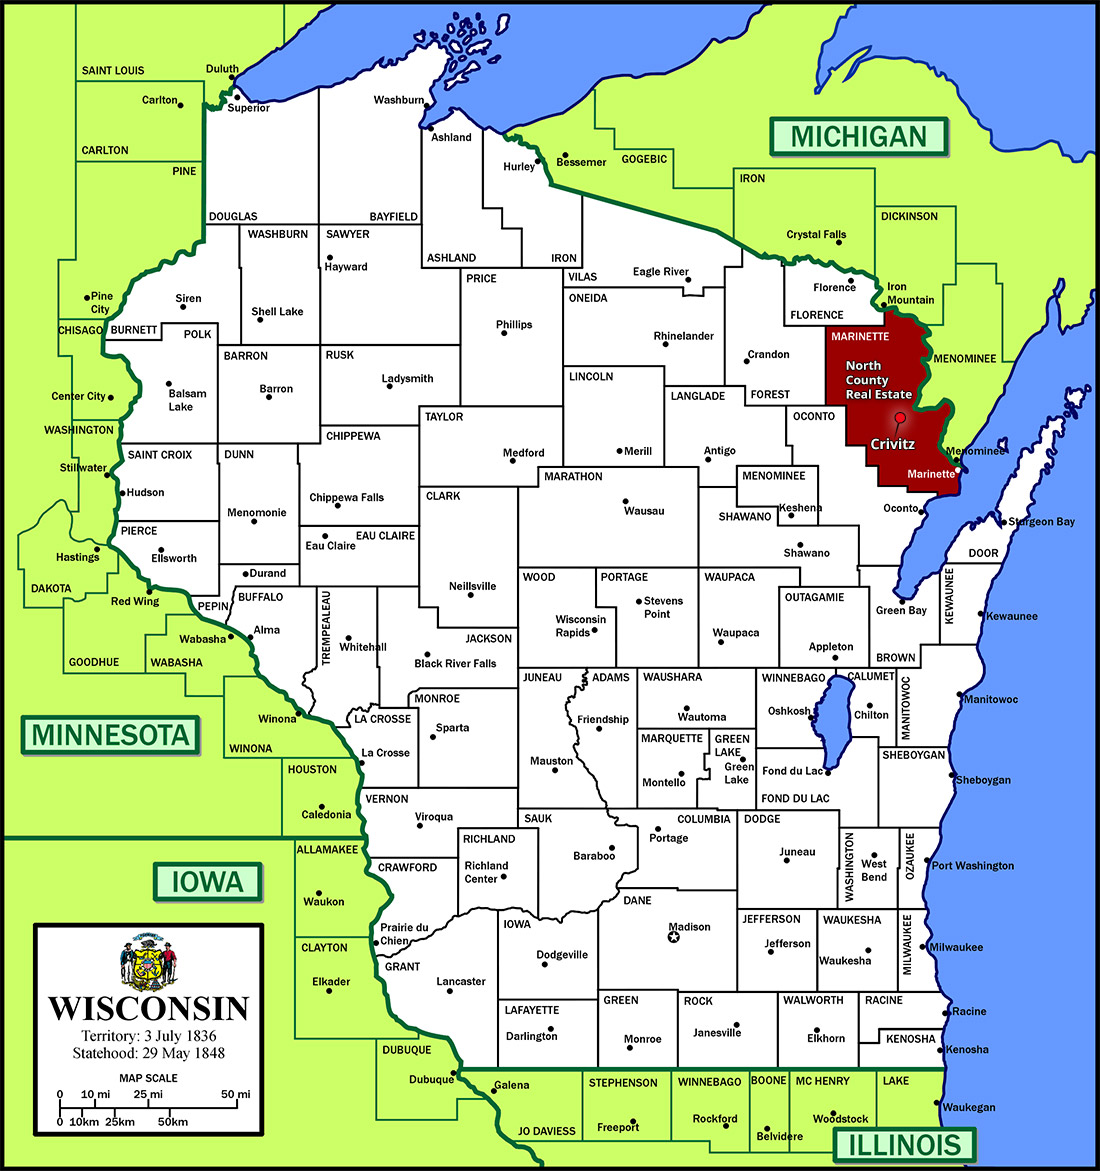 Marinette County, WI Resources & Info - North Country Real Estate